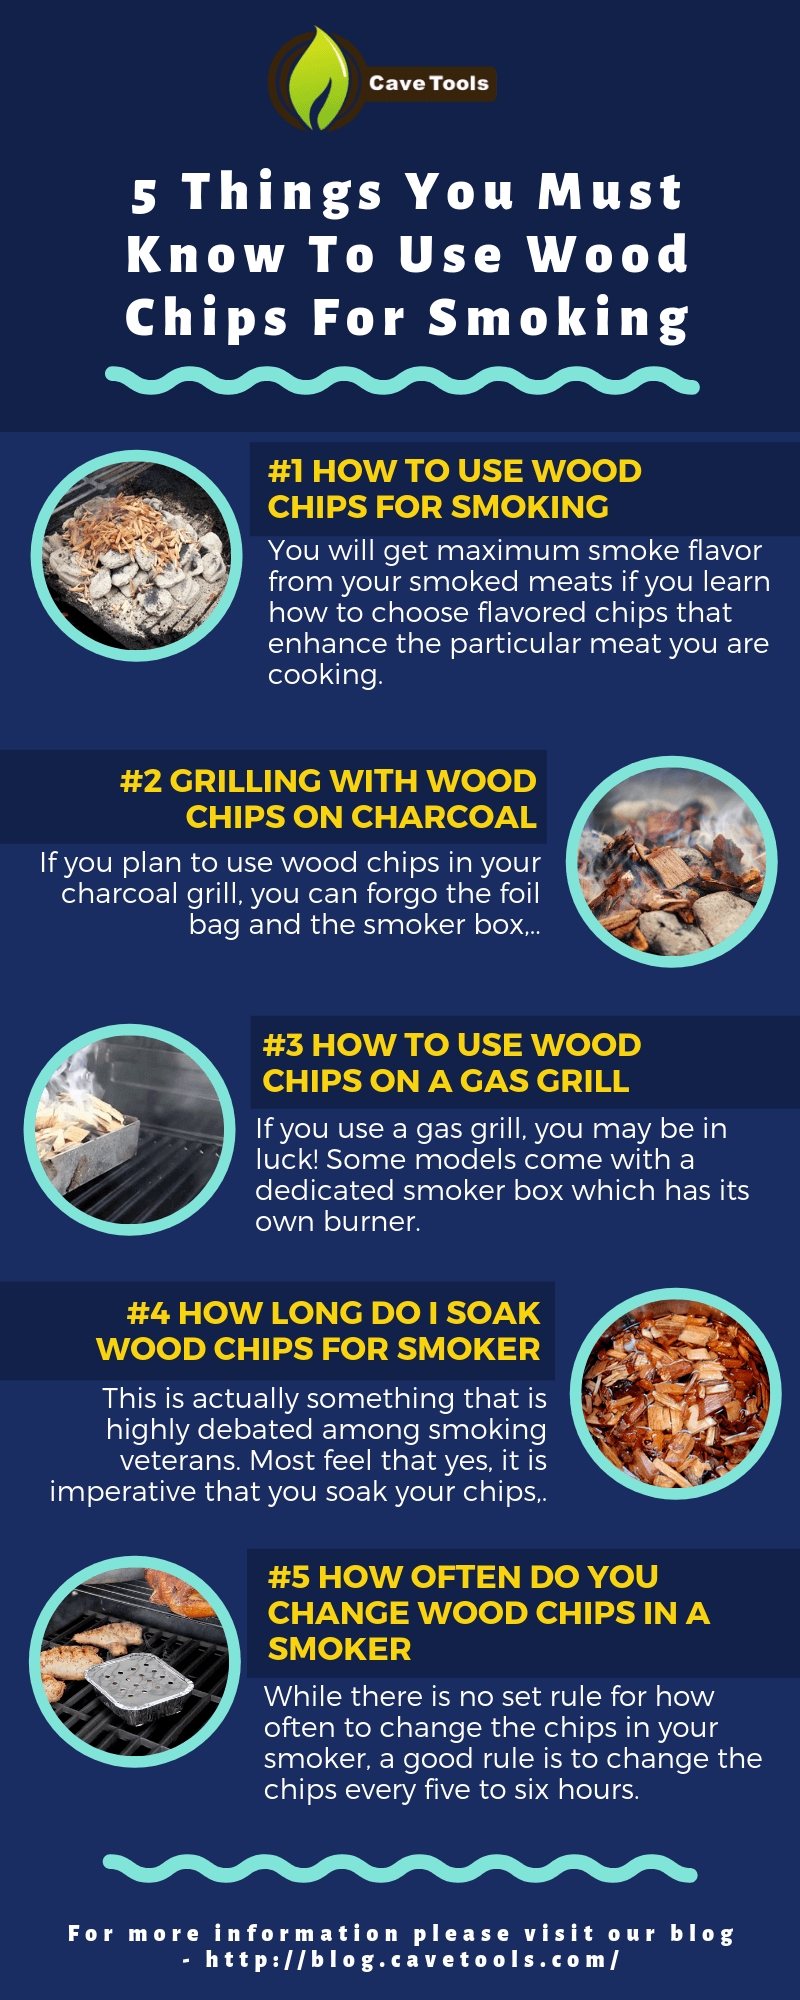 5 Things You Must Know To Use Wood Chips For Smoking